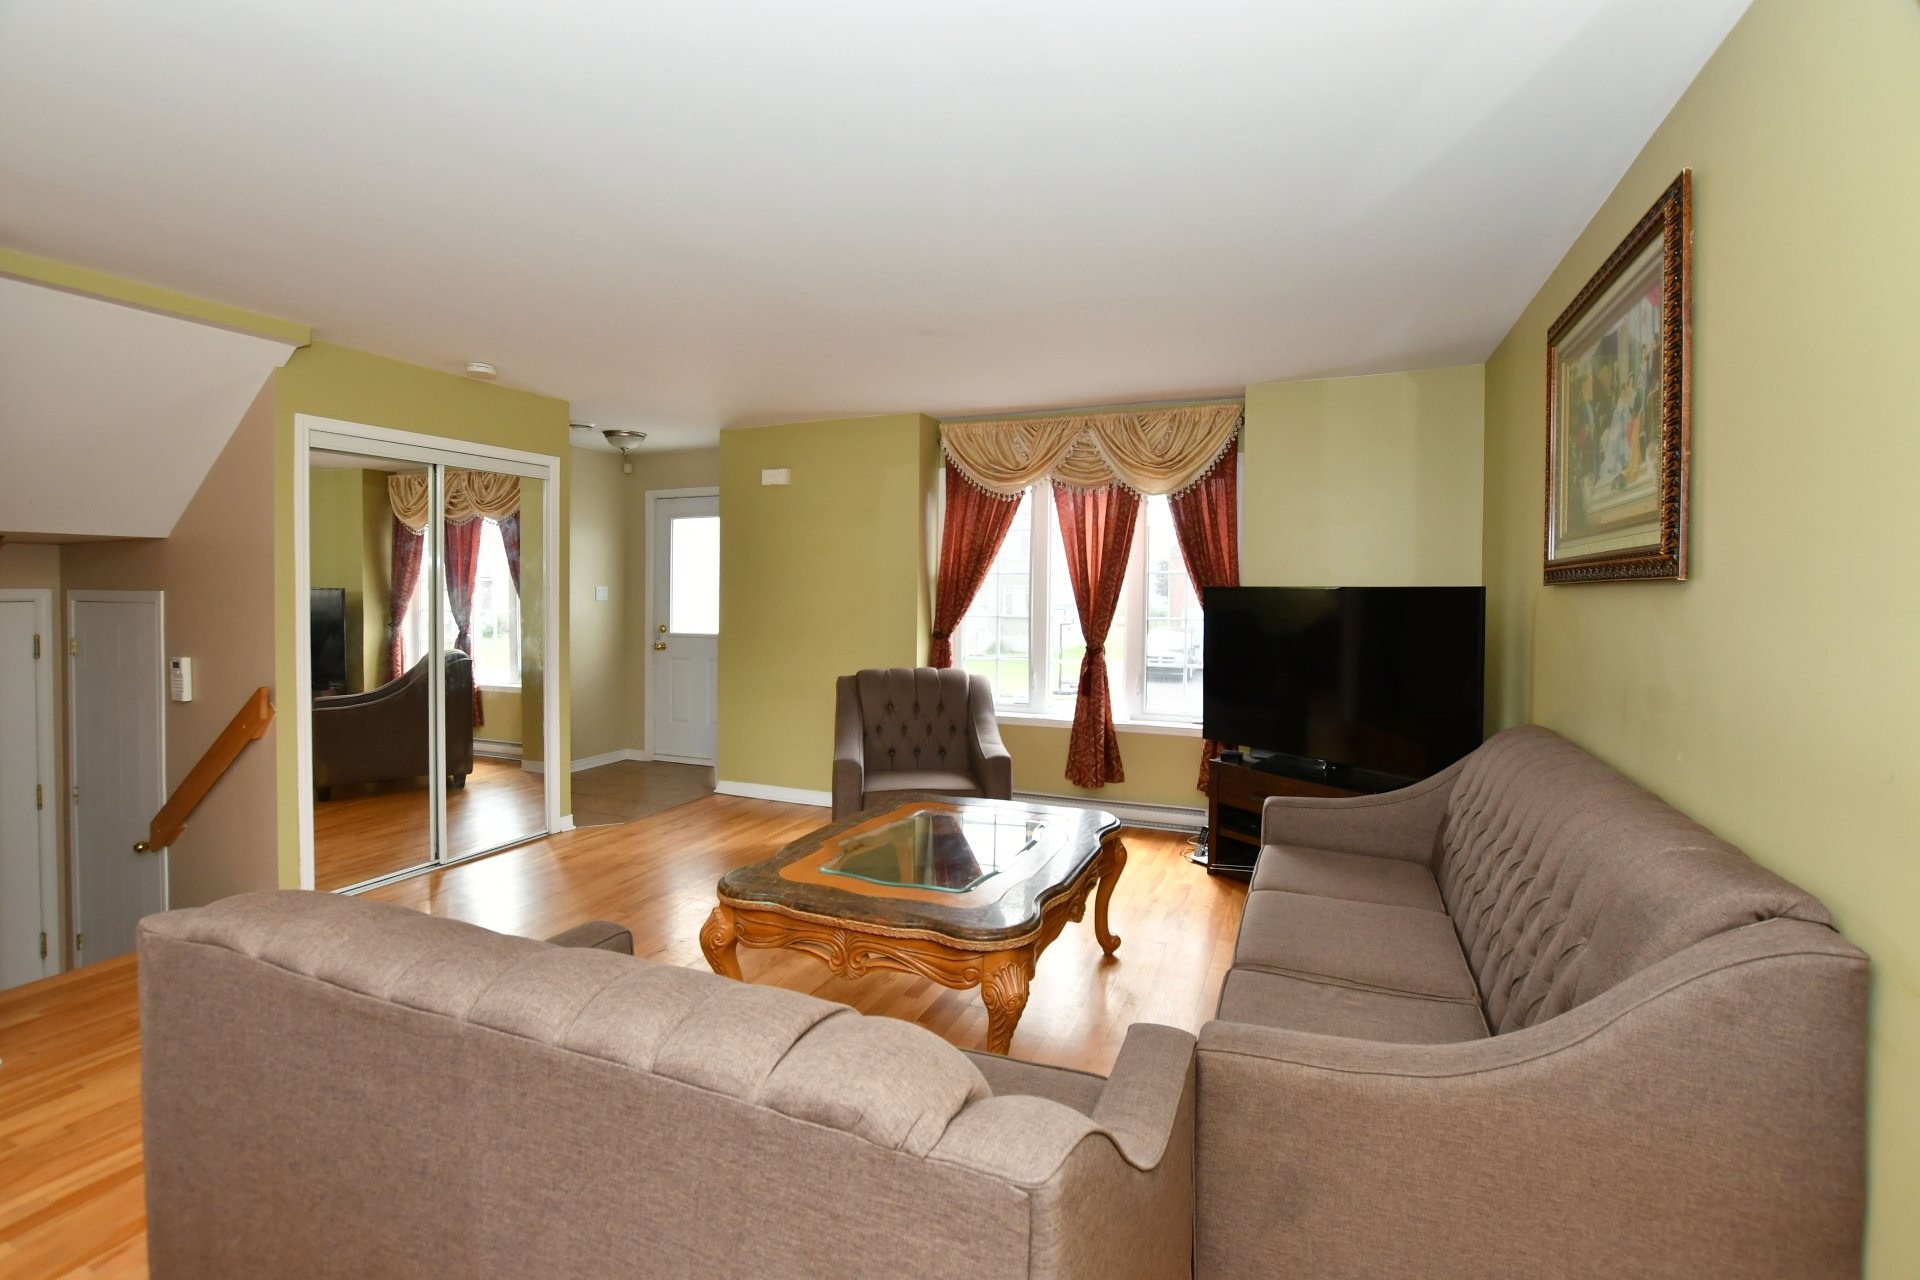 image 4 - House For sale Vaudreuil-Dorion - 10 rooms